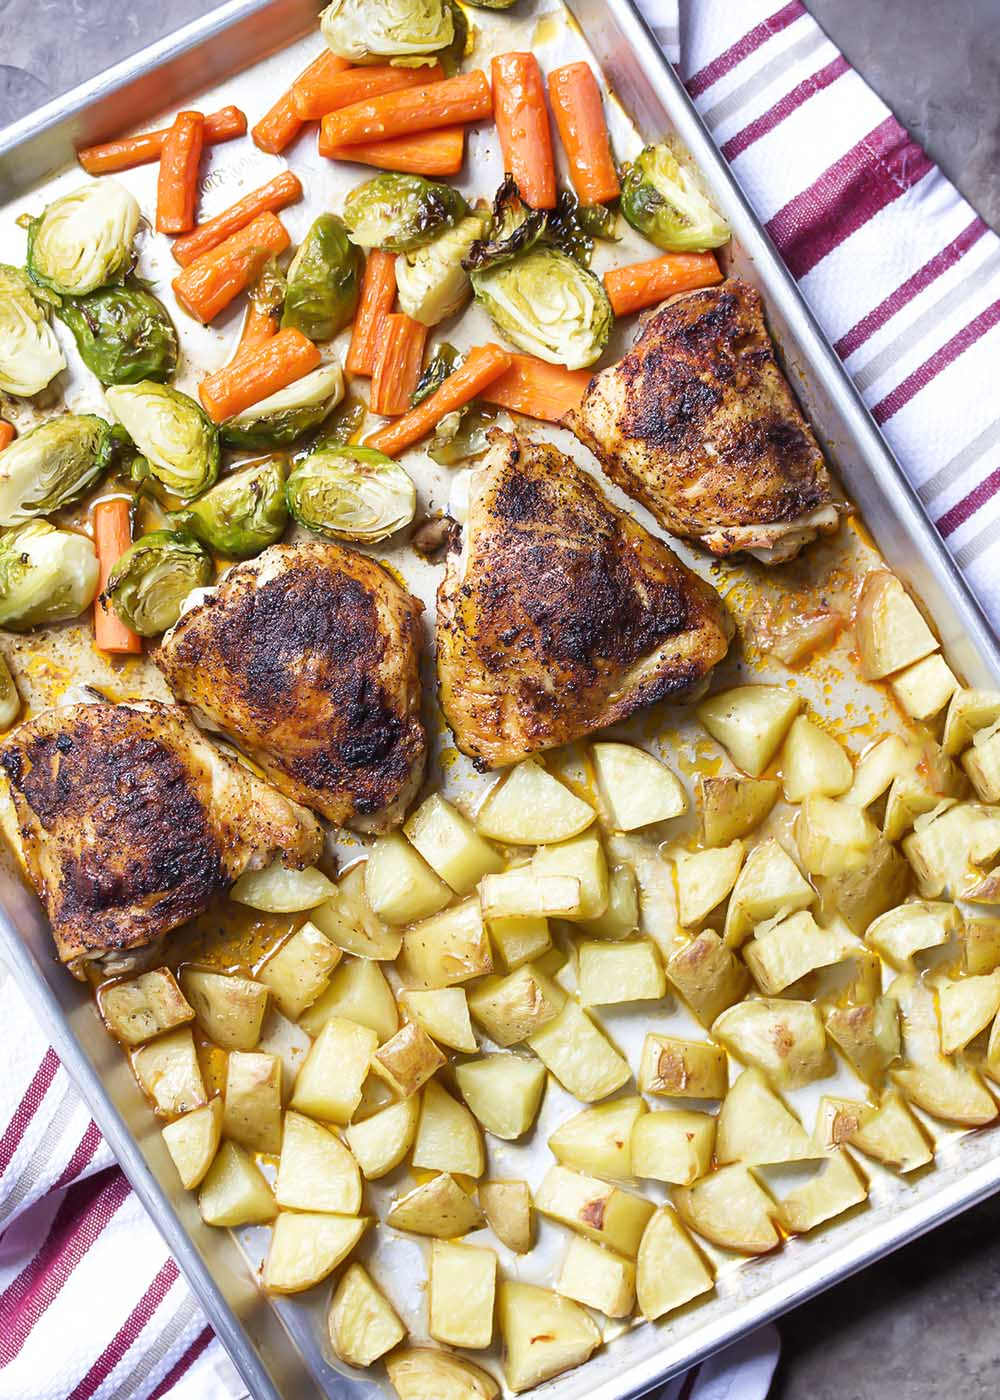 Top view of the sheet pan with the chicken, vegetables, and potatoes arranged for baking.